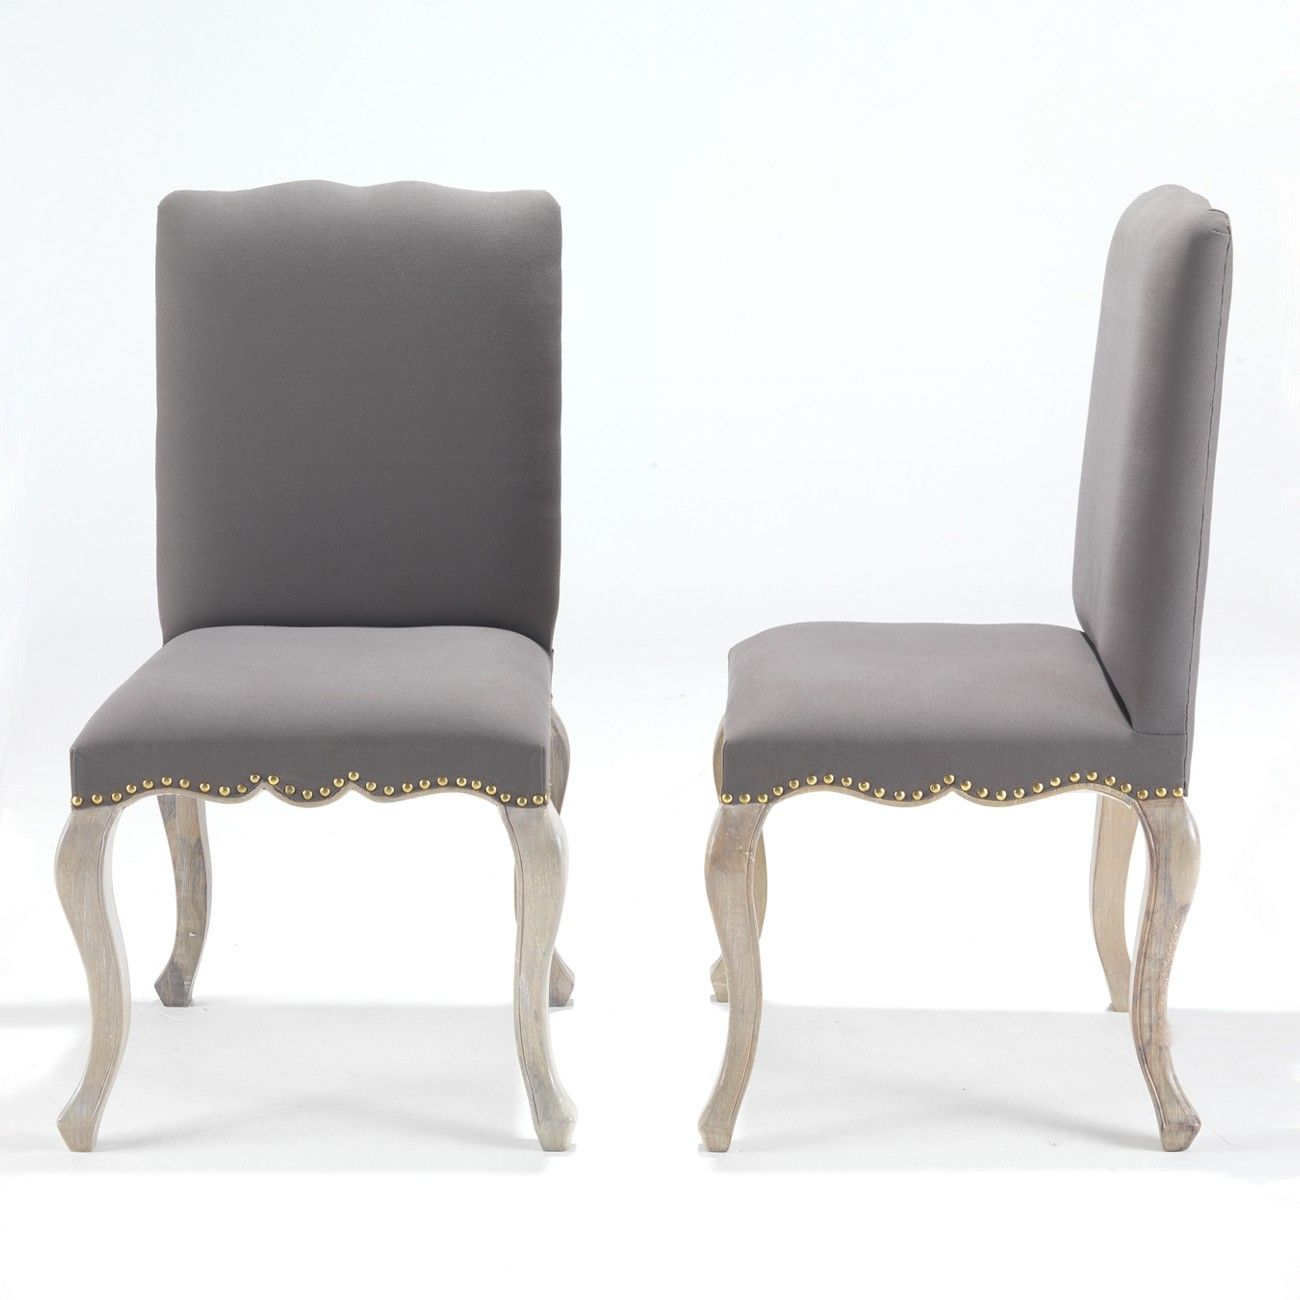 Groovy Delectable Black Leather Studded Dining Chairs Dining Gmtry Best Dining Table And Chair Ideas Images Gmtryco